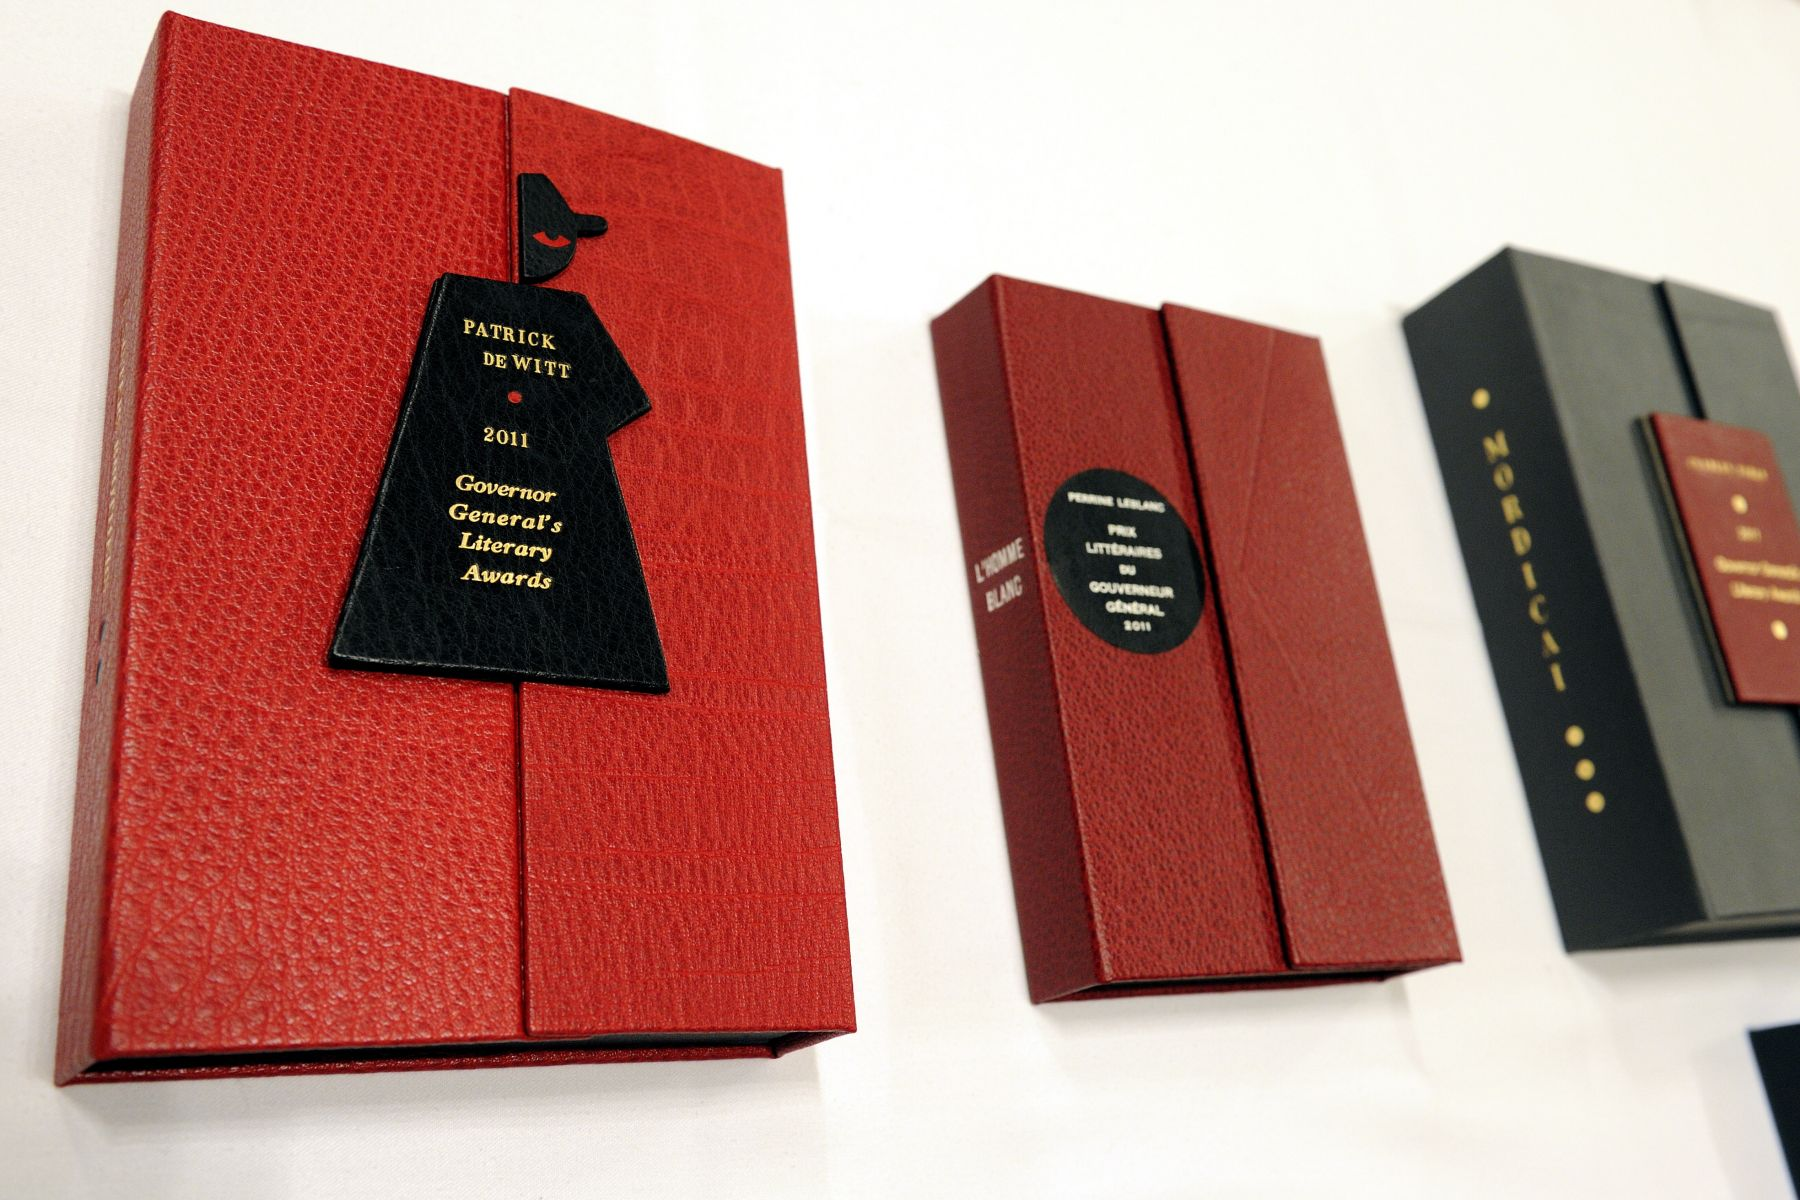 The Governor General's Literary Awards, administered by the Canada Council for the Arts, are Canada's oldest and most prestigious awards for English- and French-language Canadian literature. In addition to the monetary award, each laureate receives a specially-bound copy of the winning book, created by Montreal book-binder Lise Dubois.